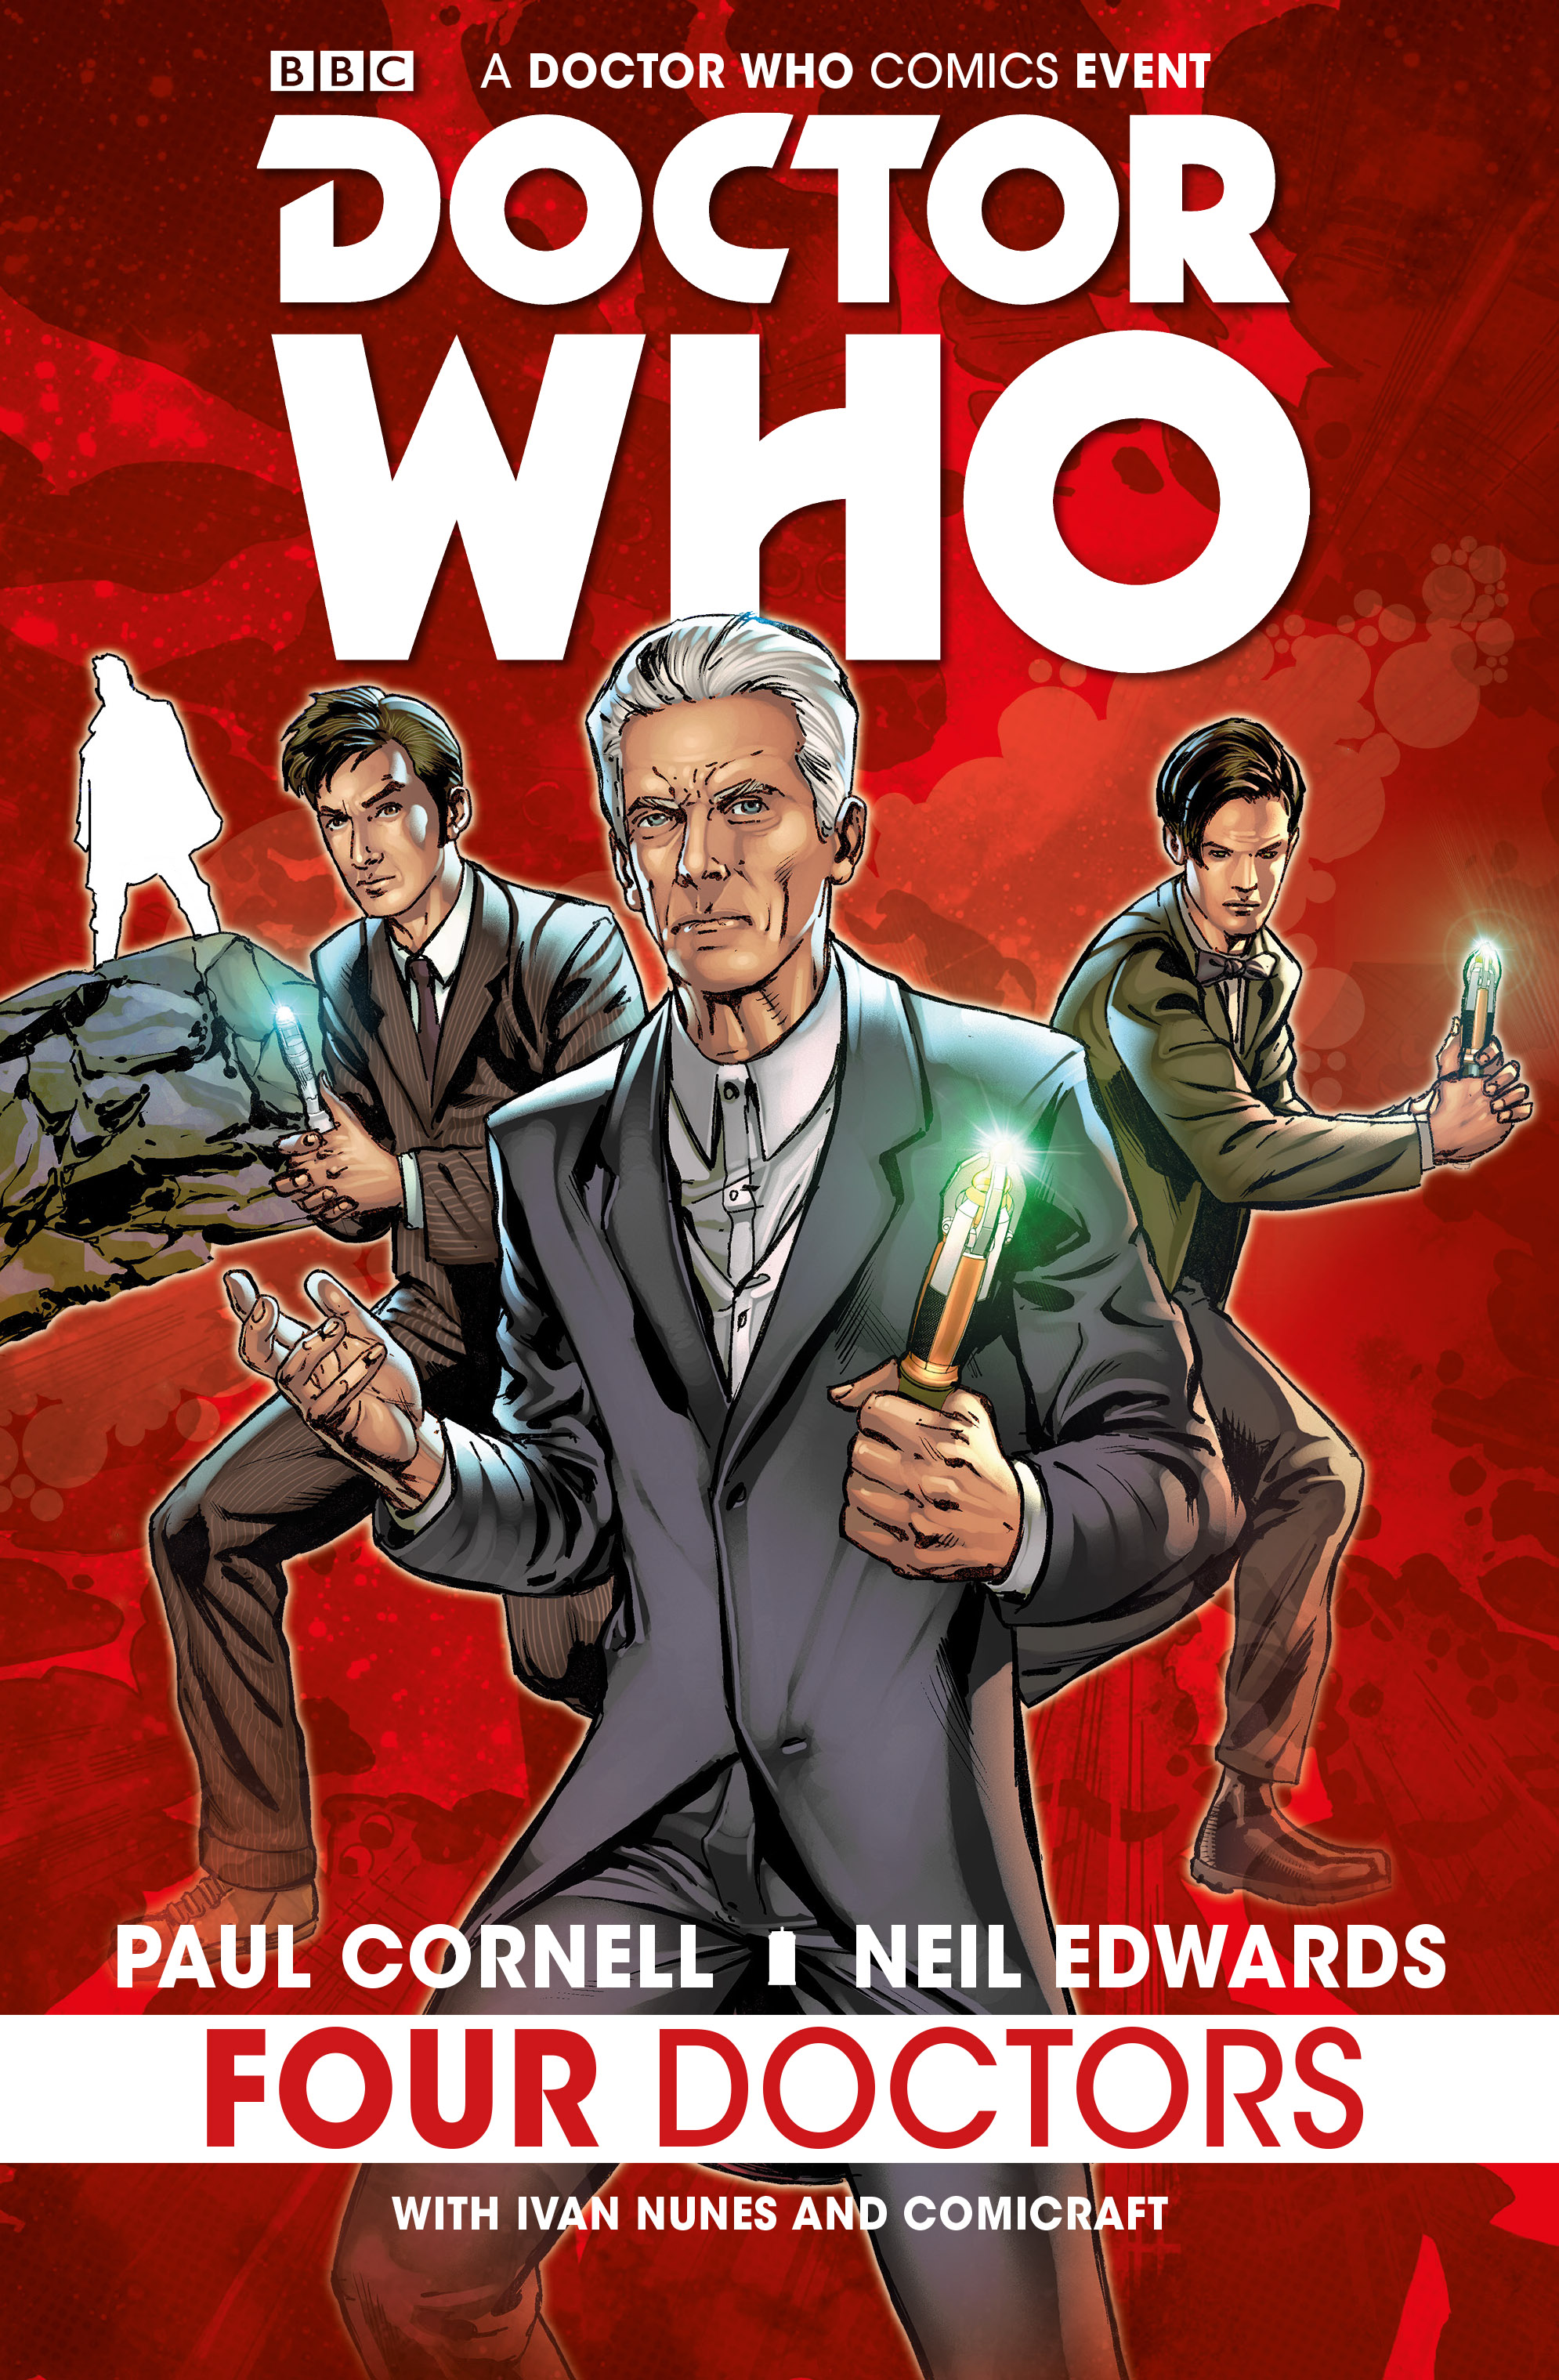 REVIEW: Doctor Who: Four Doctors Hardcover Edition - Out